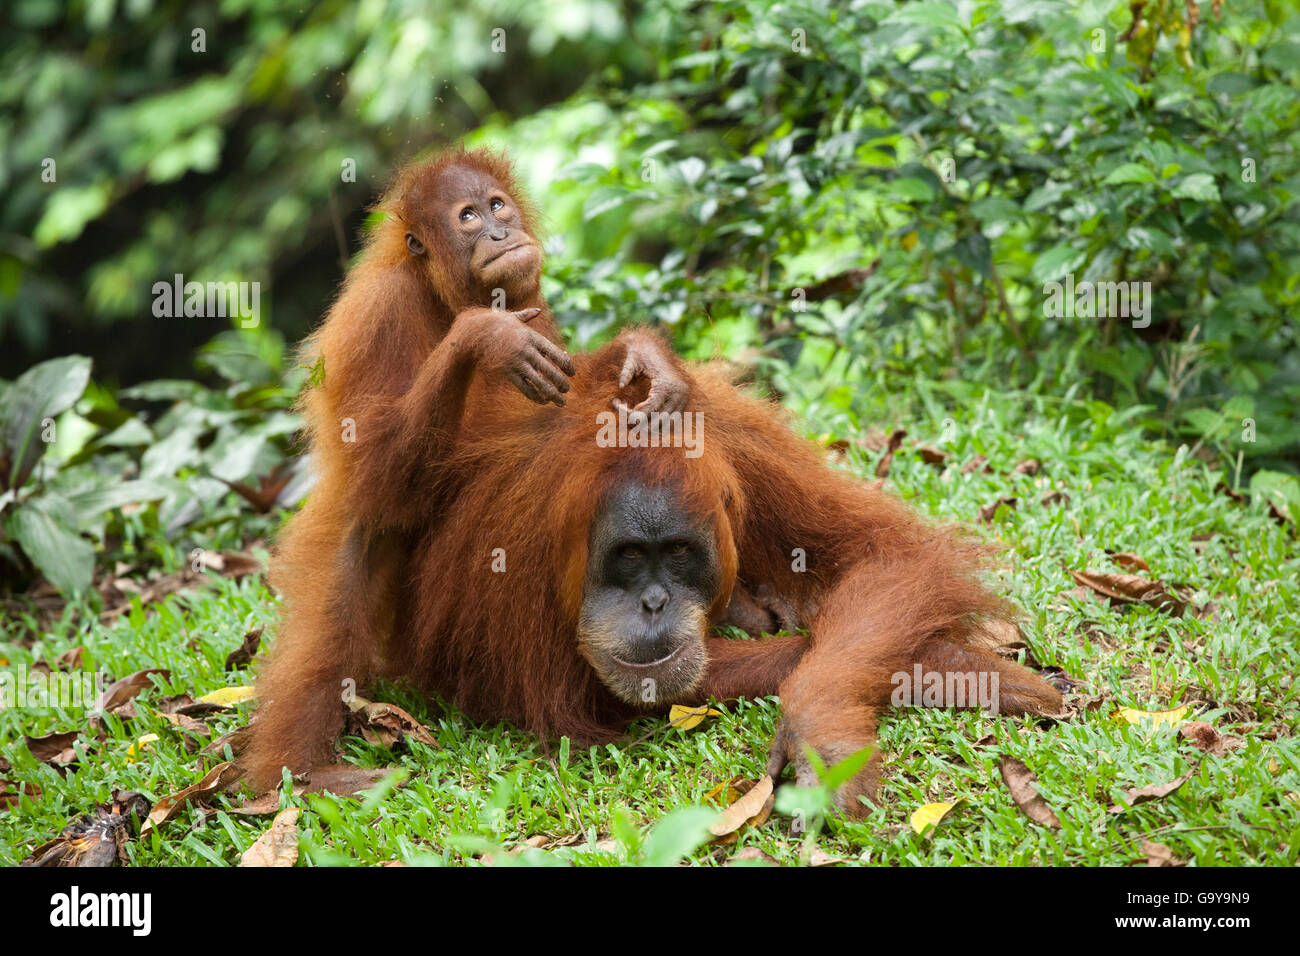 Sumatran orangutan (Pongo abelii) with young, in the rain forests of Sumatra, Indonesia, Asia Stock Photo